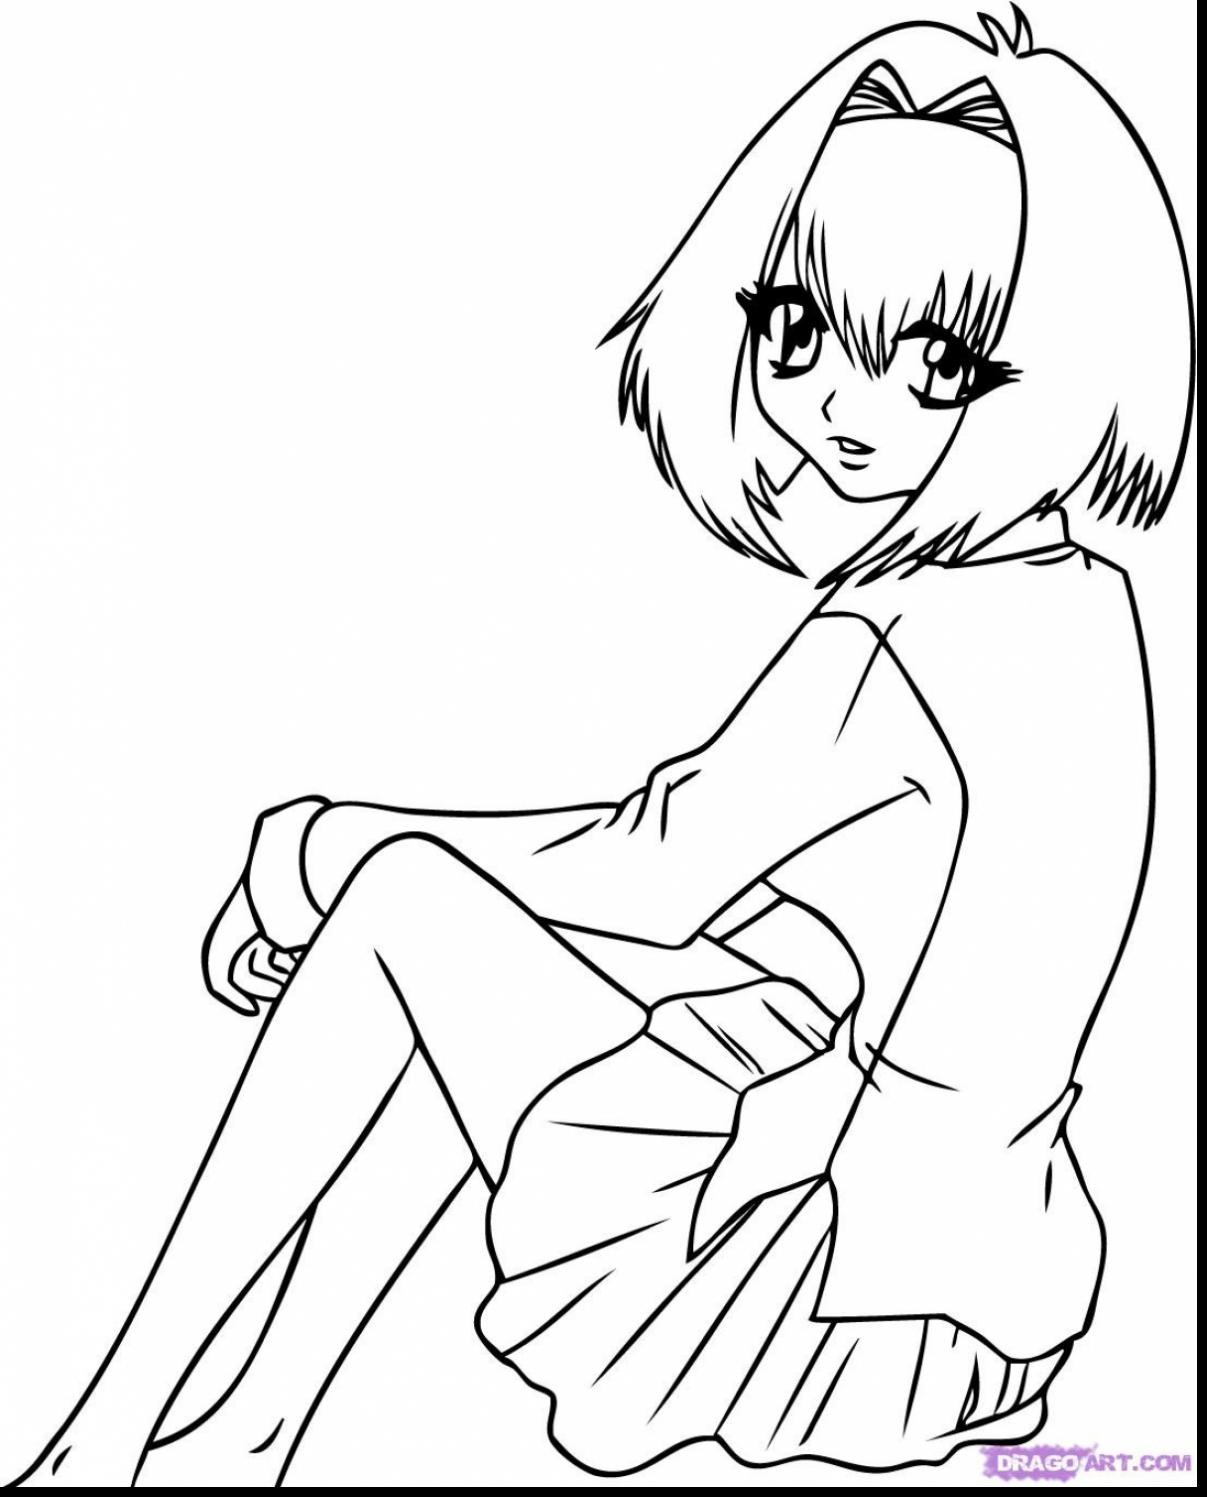 1207x1497 Chibi Vampire Coloring Pages Best Of Great Anime Chibi Vampire